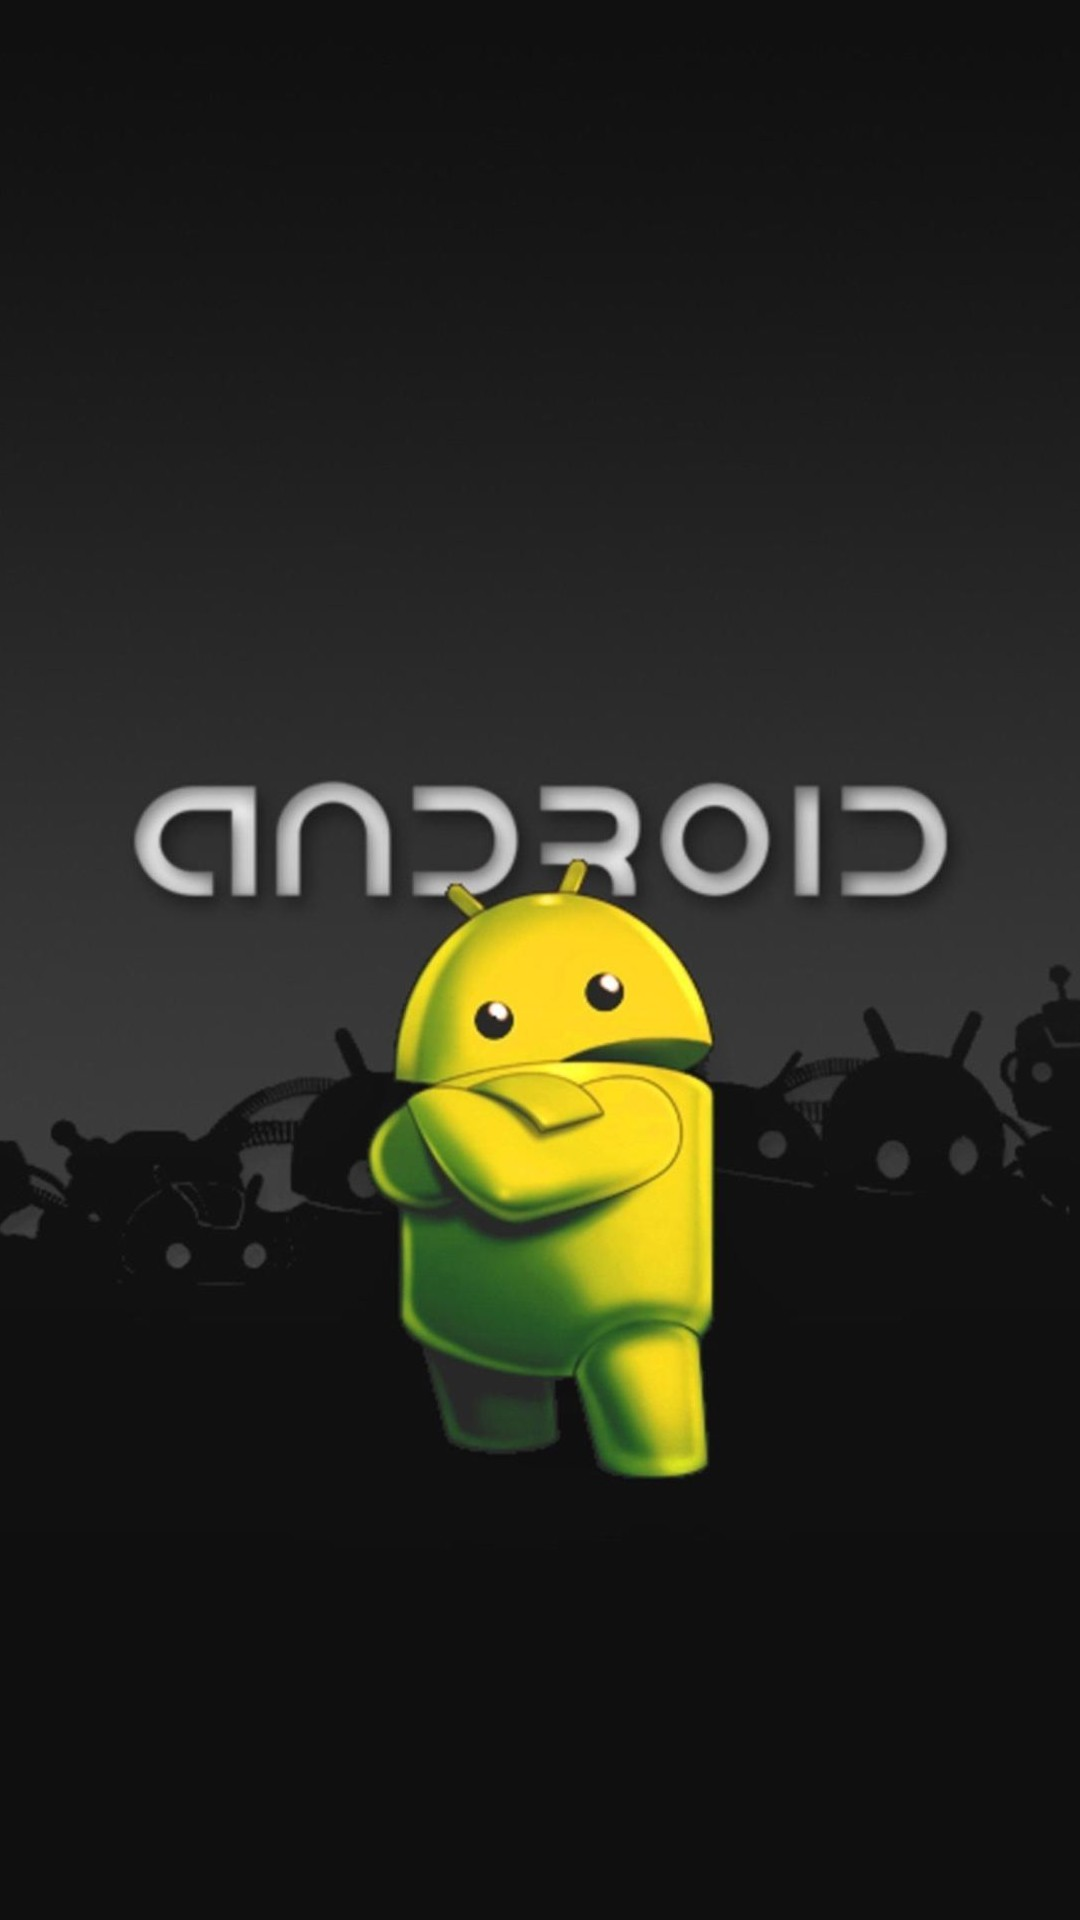 Android Nexus 5 Wallpapers HD 24, Nexus 5 wallpapers and Backgrounds